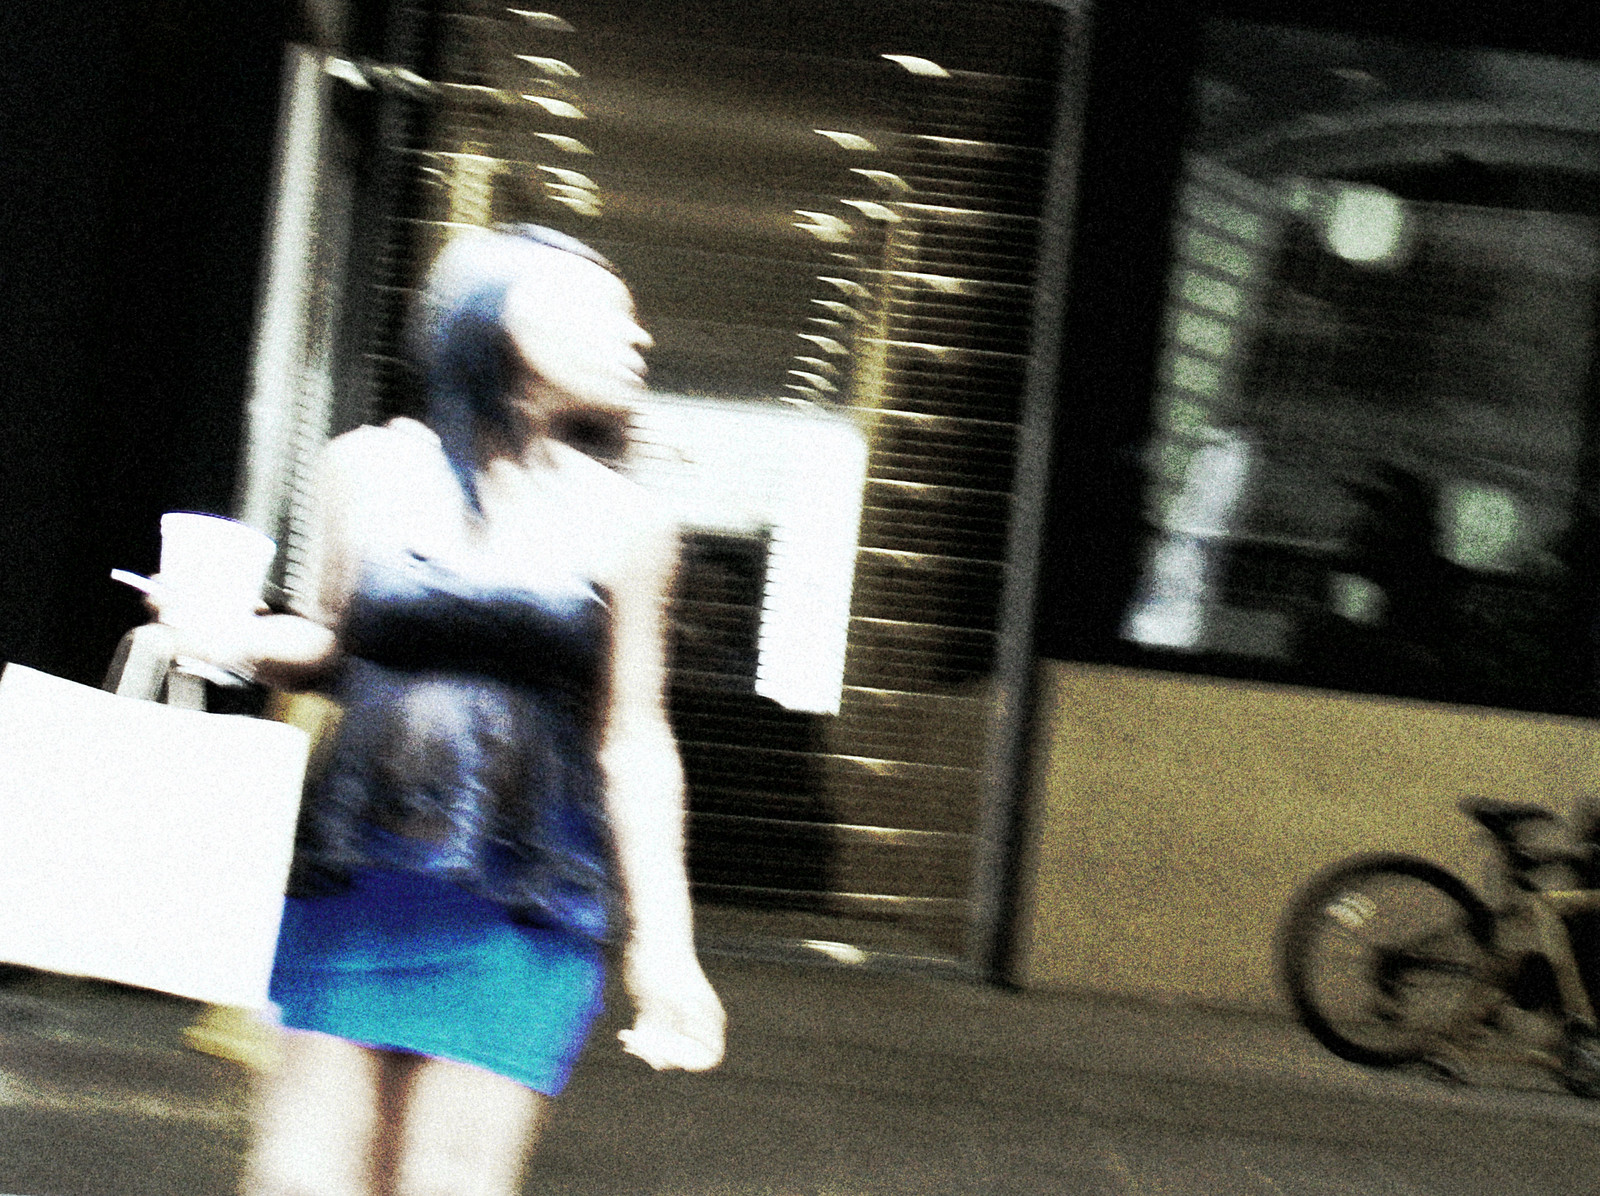 Woman in Blue Skirt, Downtown Atlanta